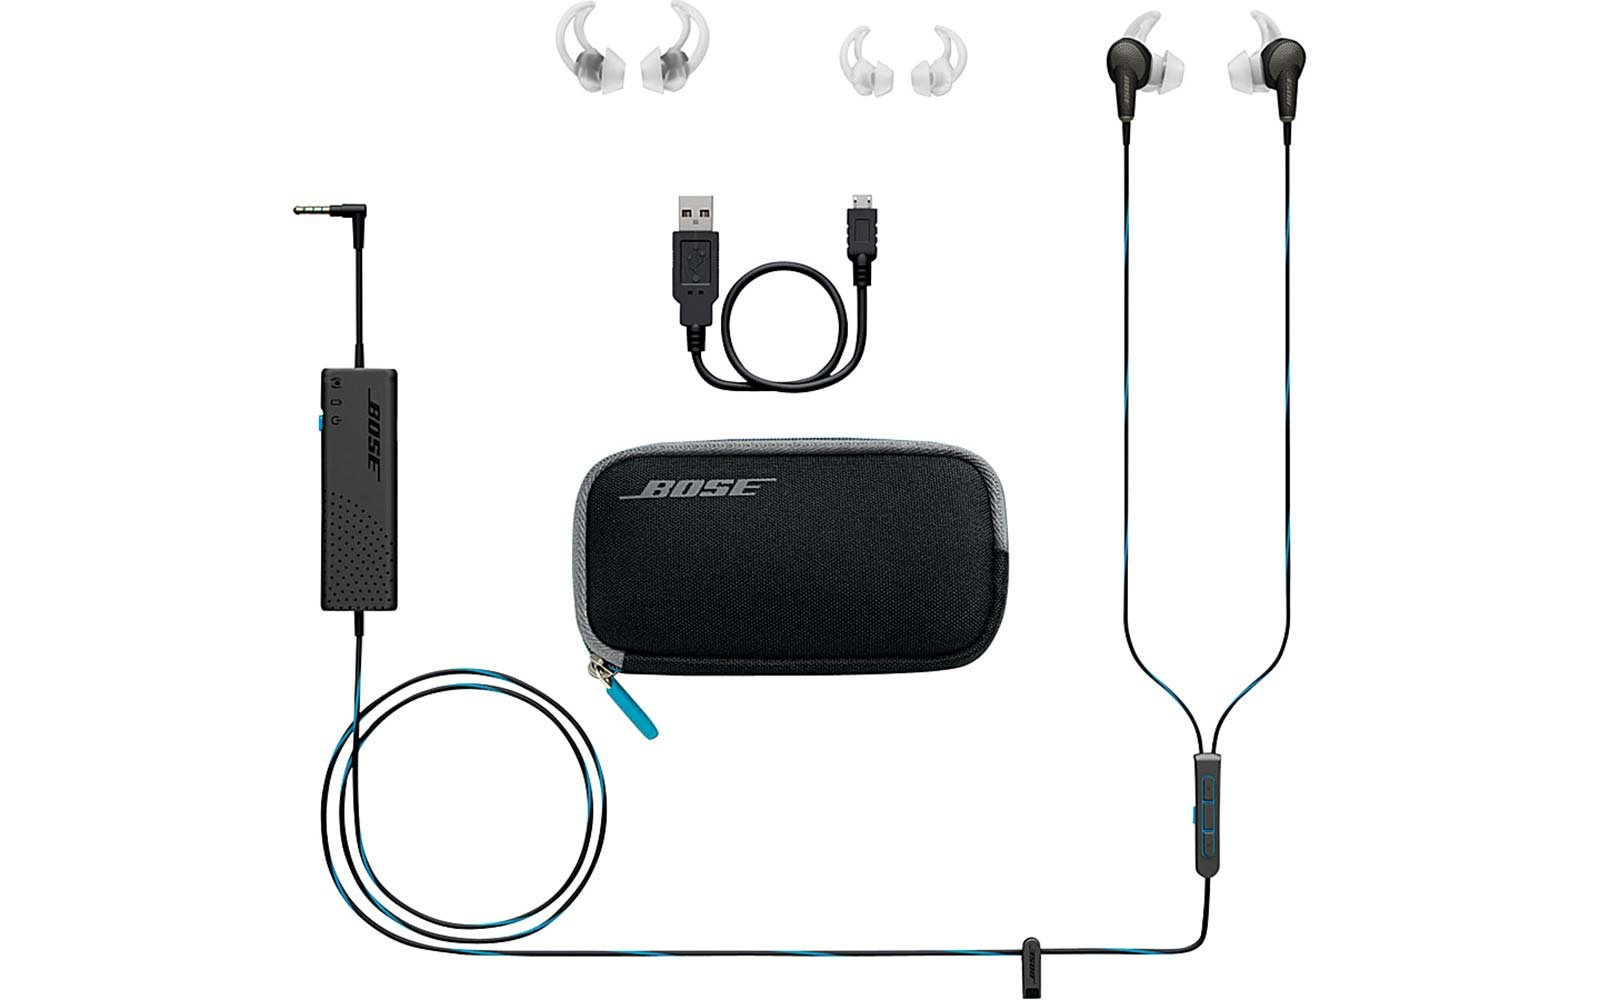 Bose Headphone Kit Travel Packing Essentials